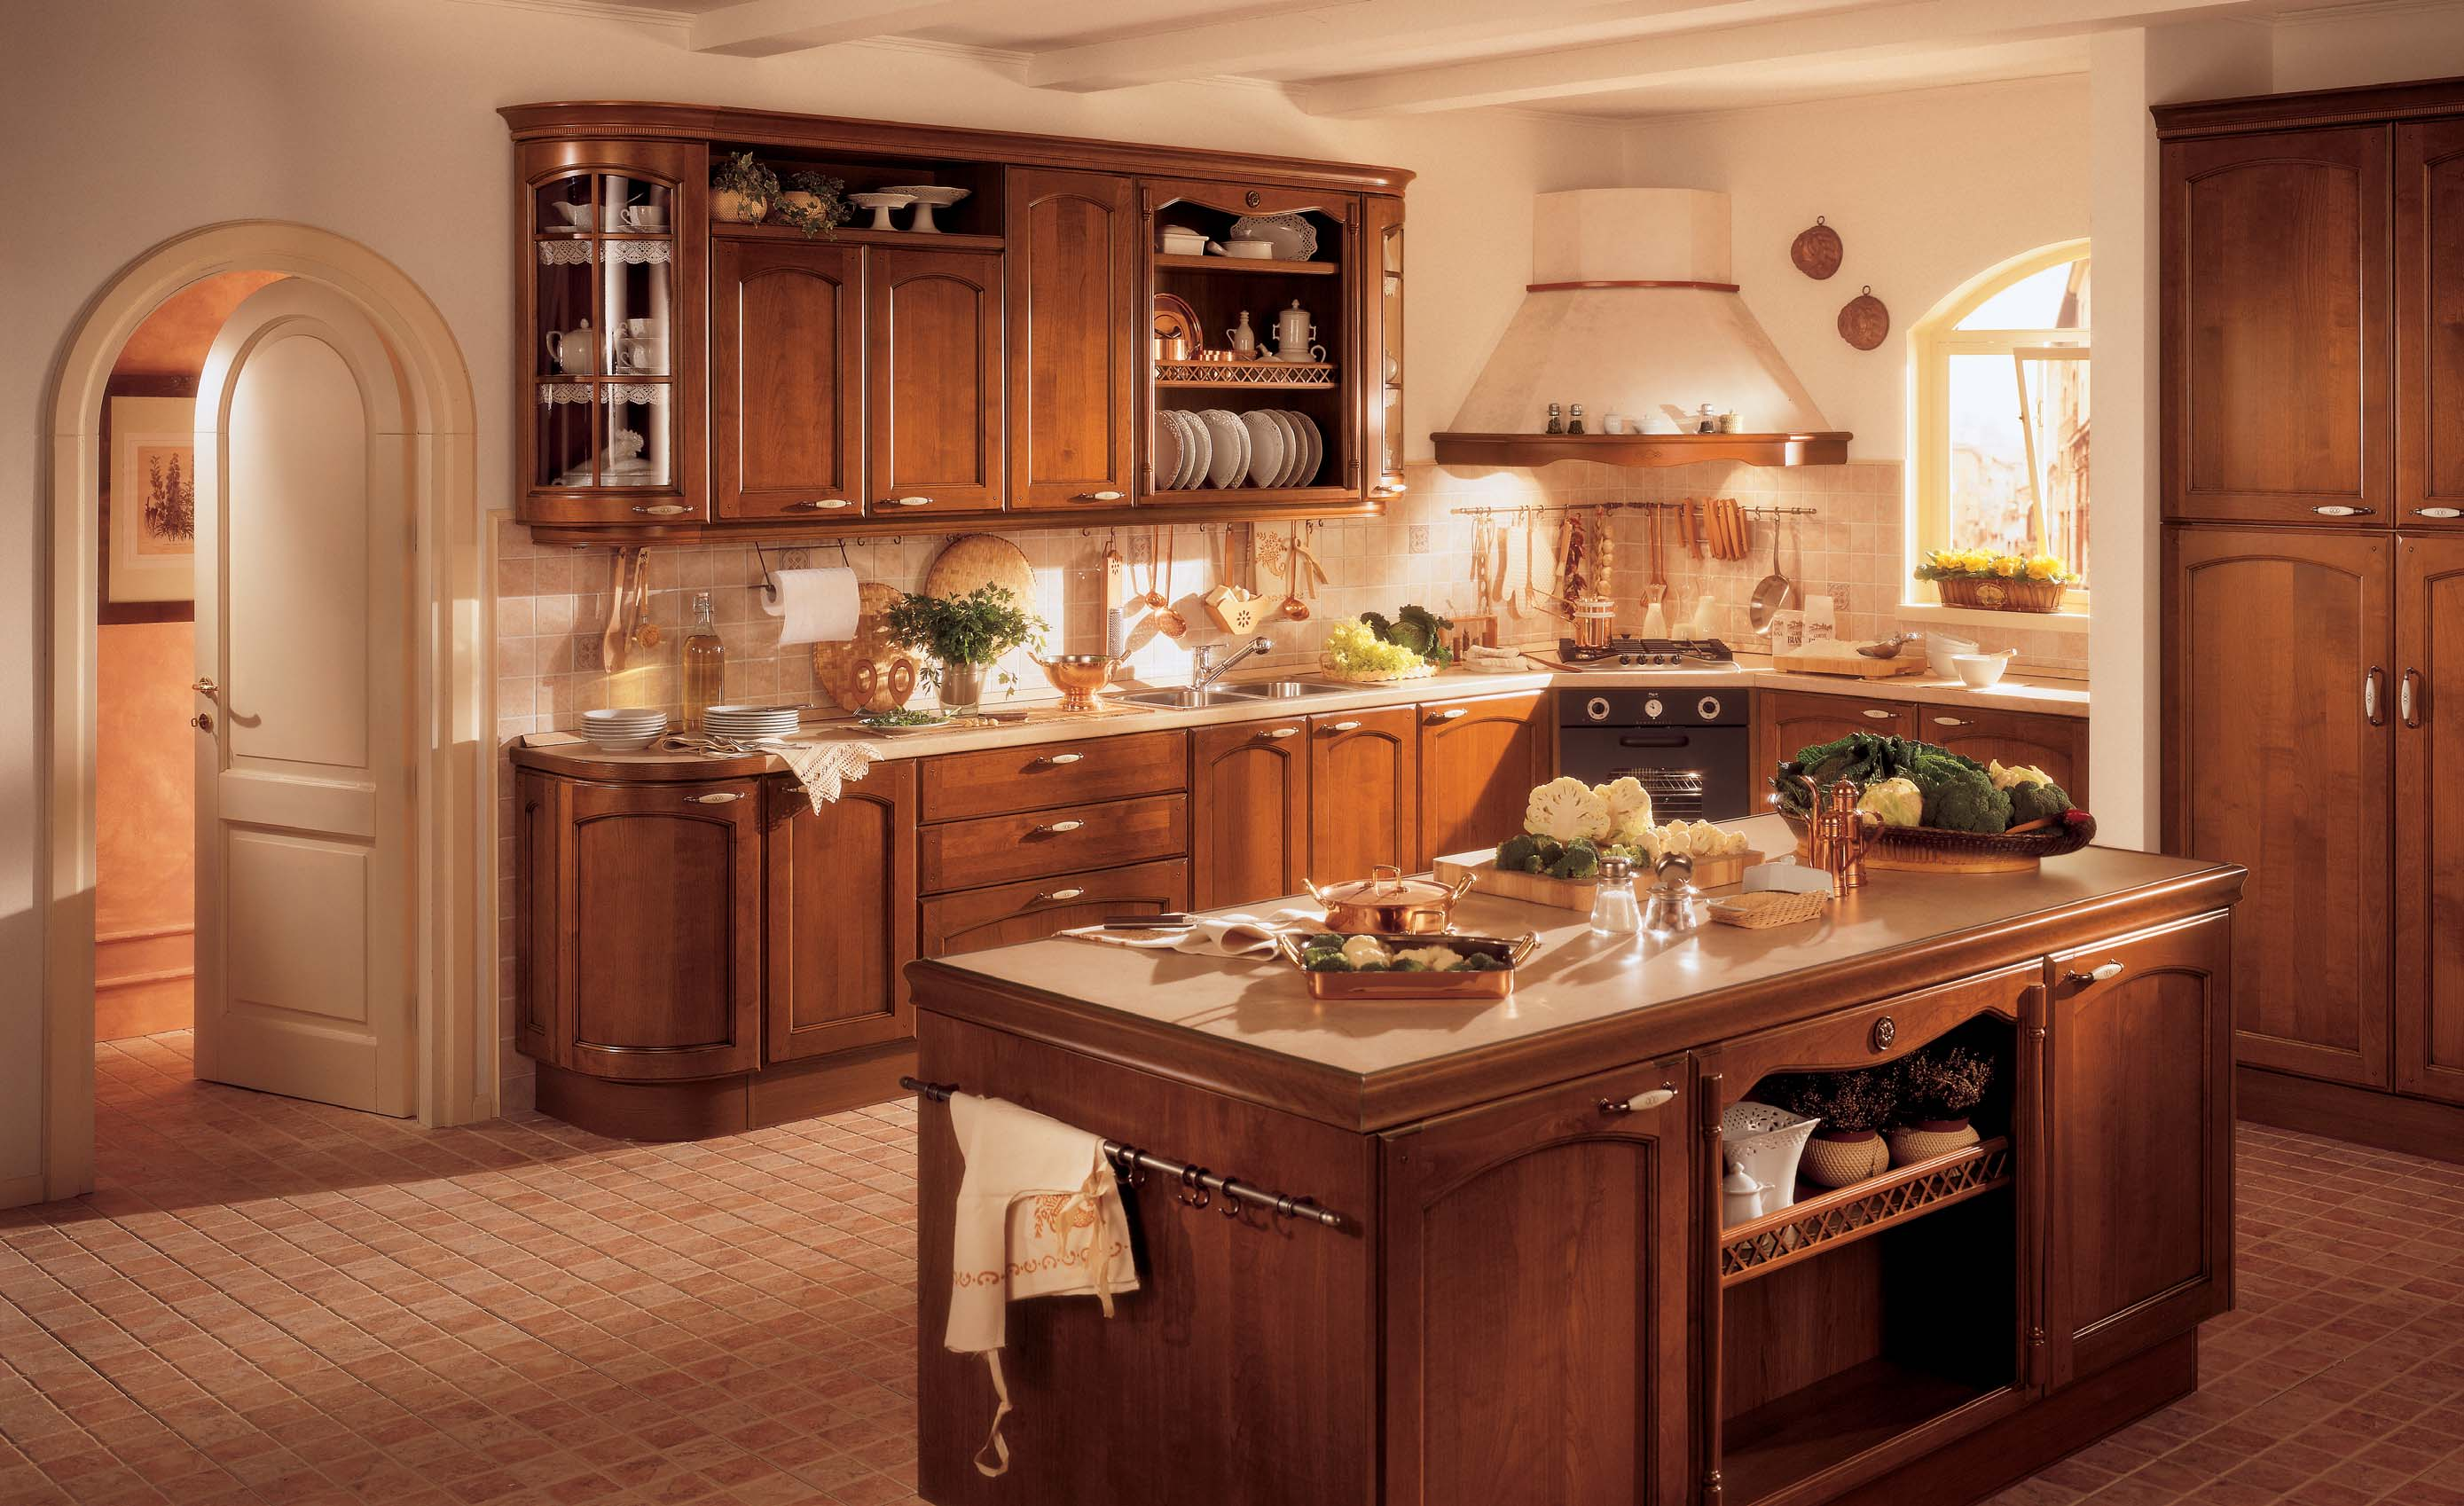 Epoca classic kitchen interior design for Kitchen interior ideas